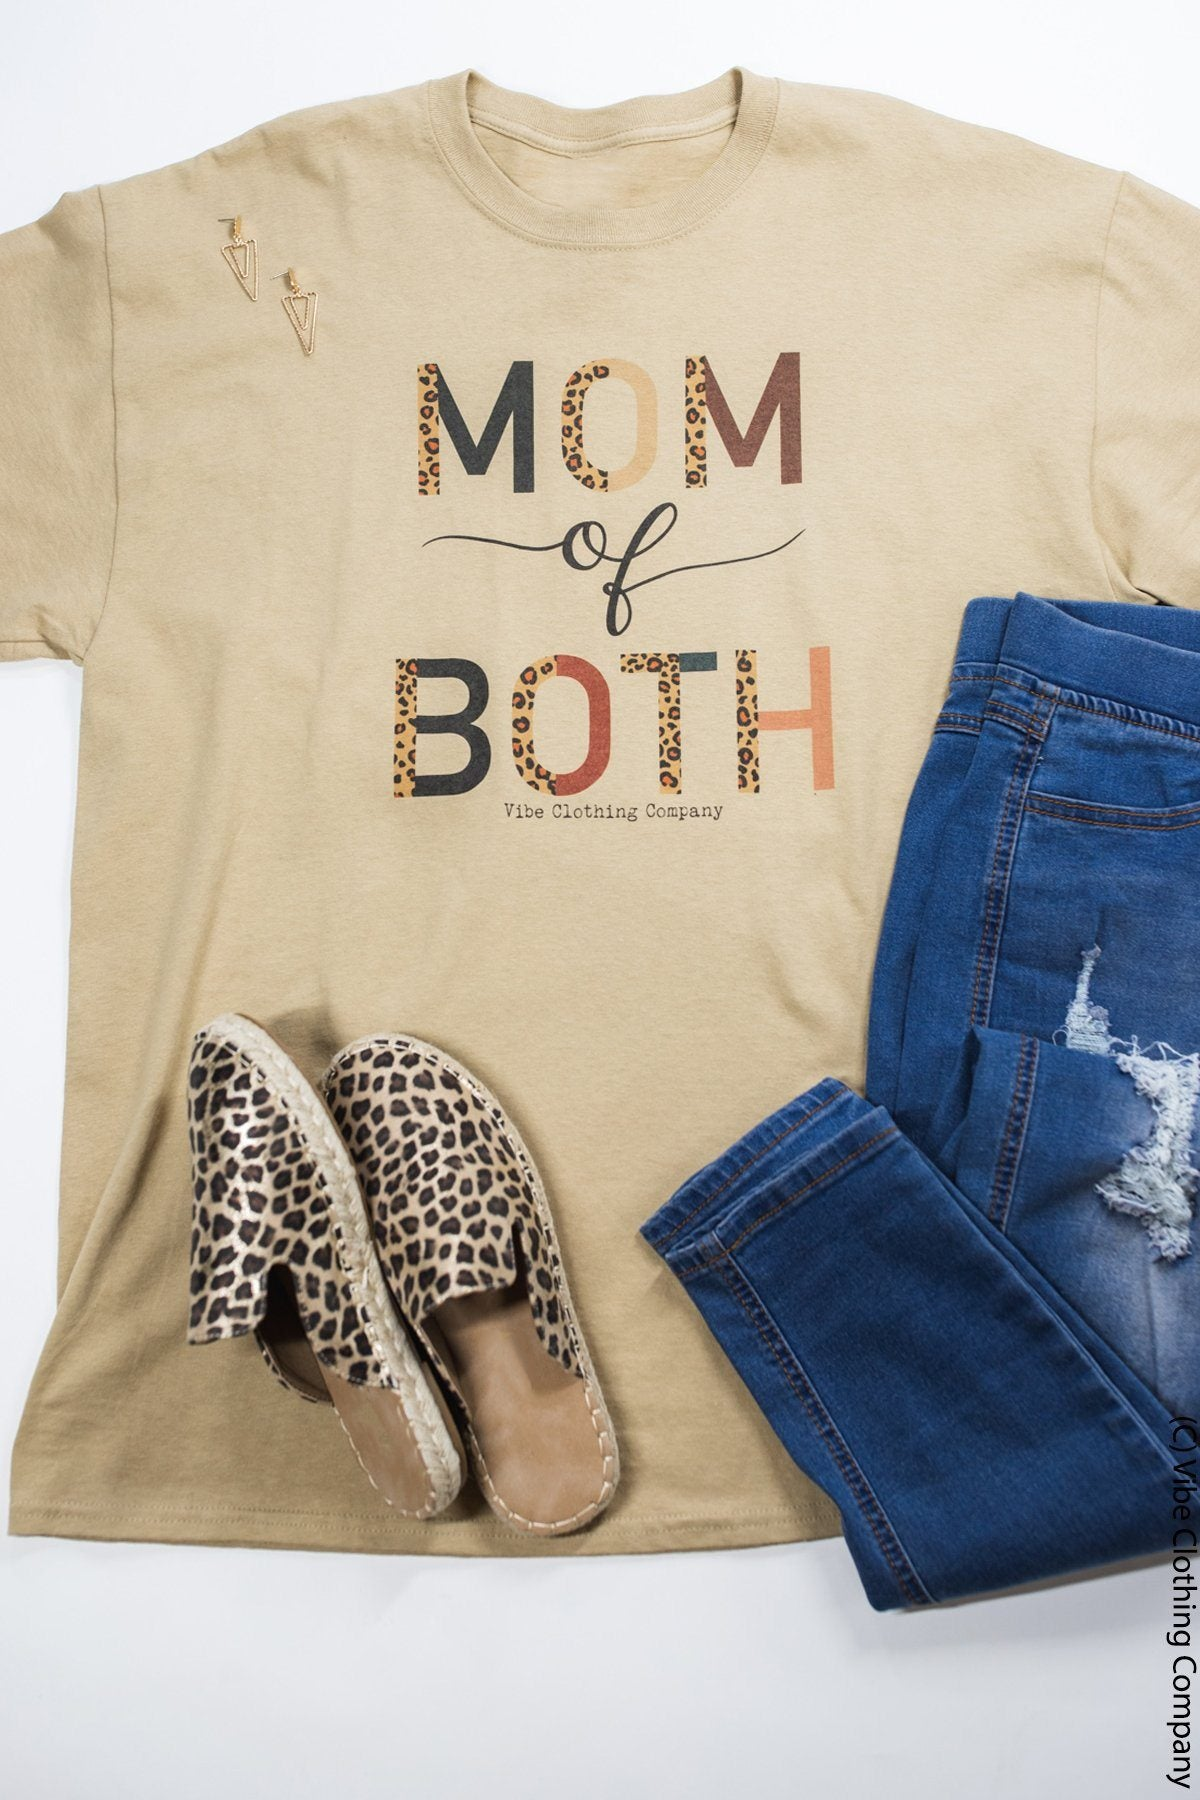 MoM of Both Graphic Tee graphic tees Mark tee Small Sandy Tan